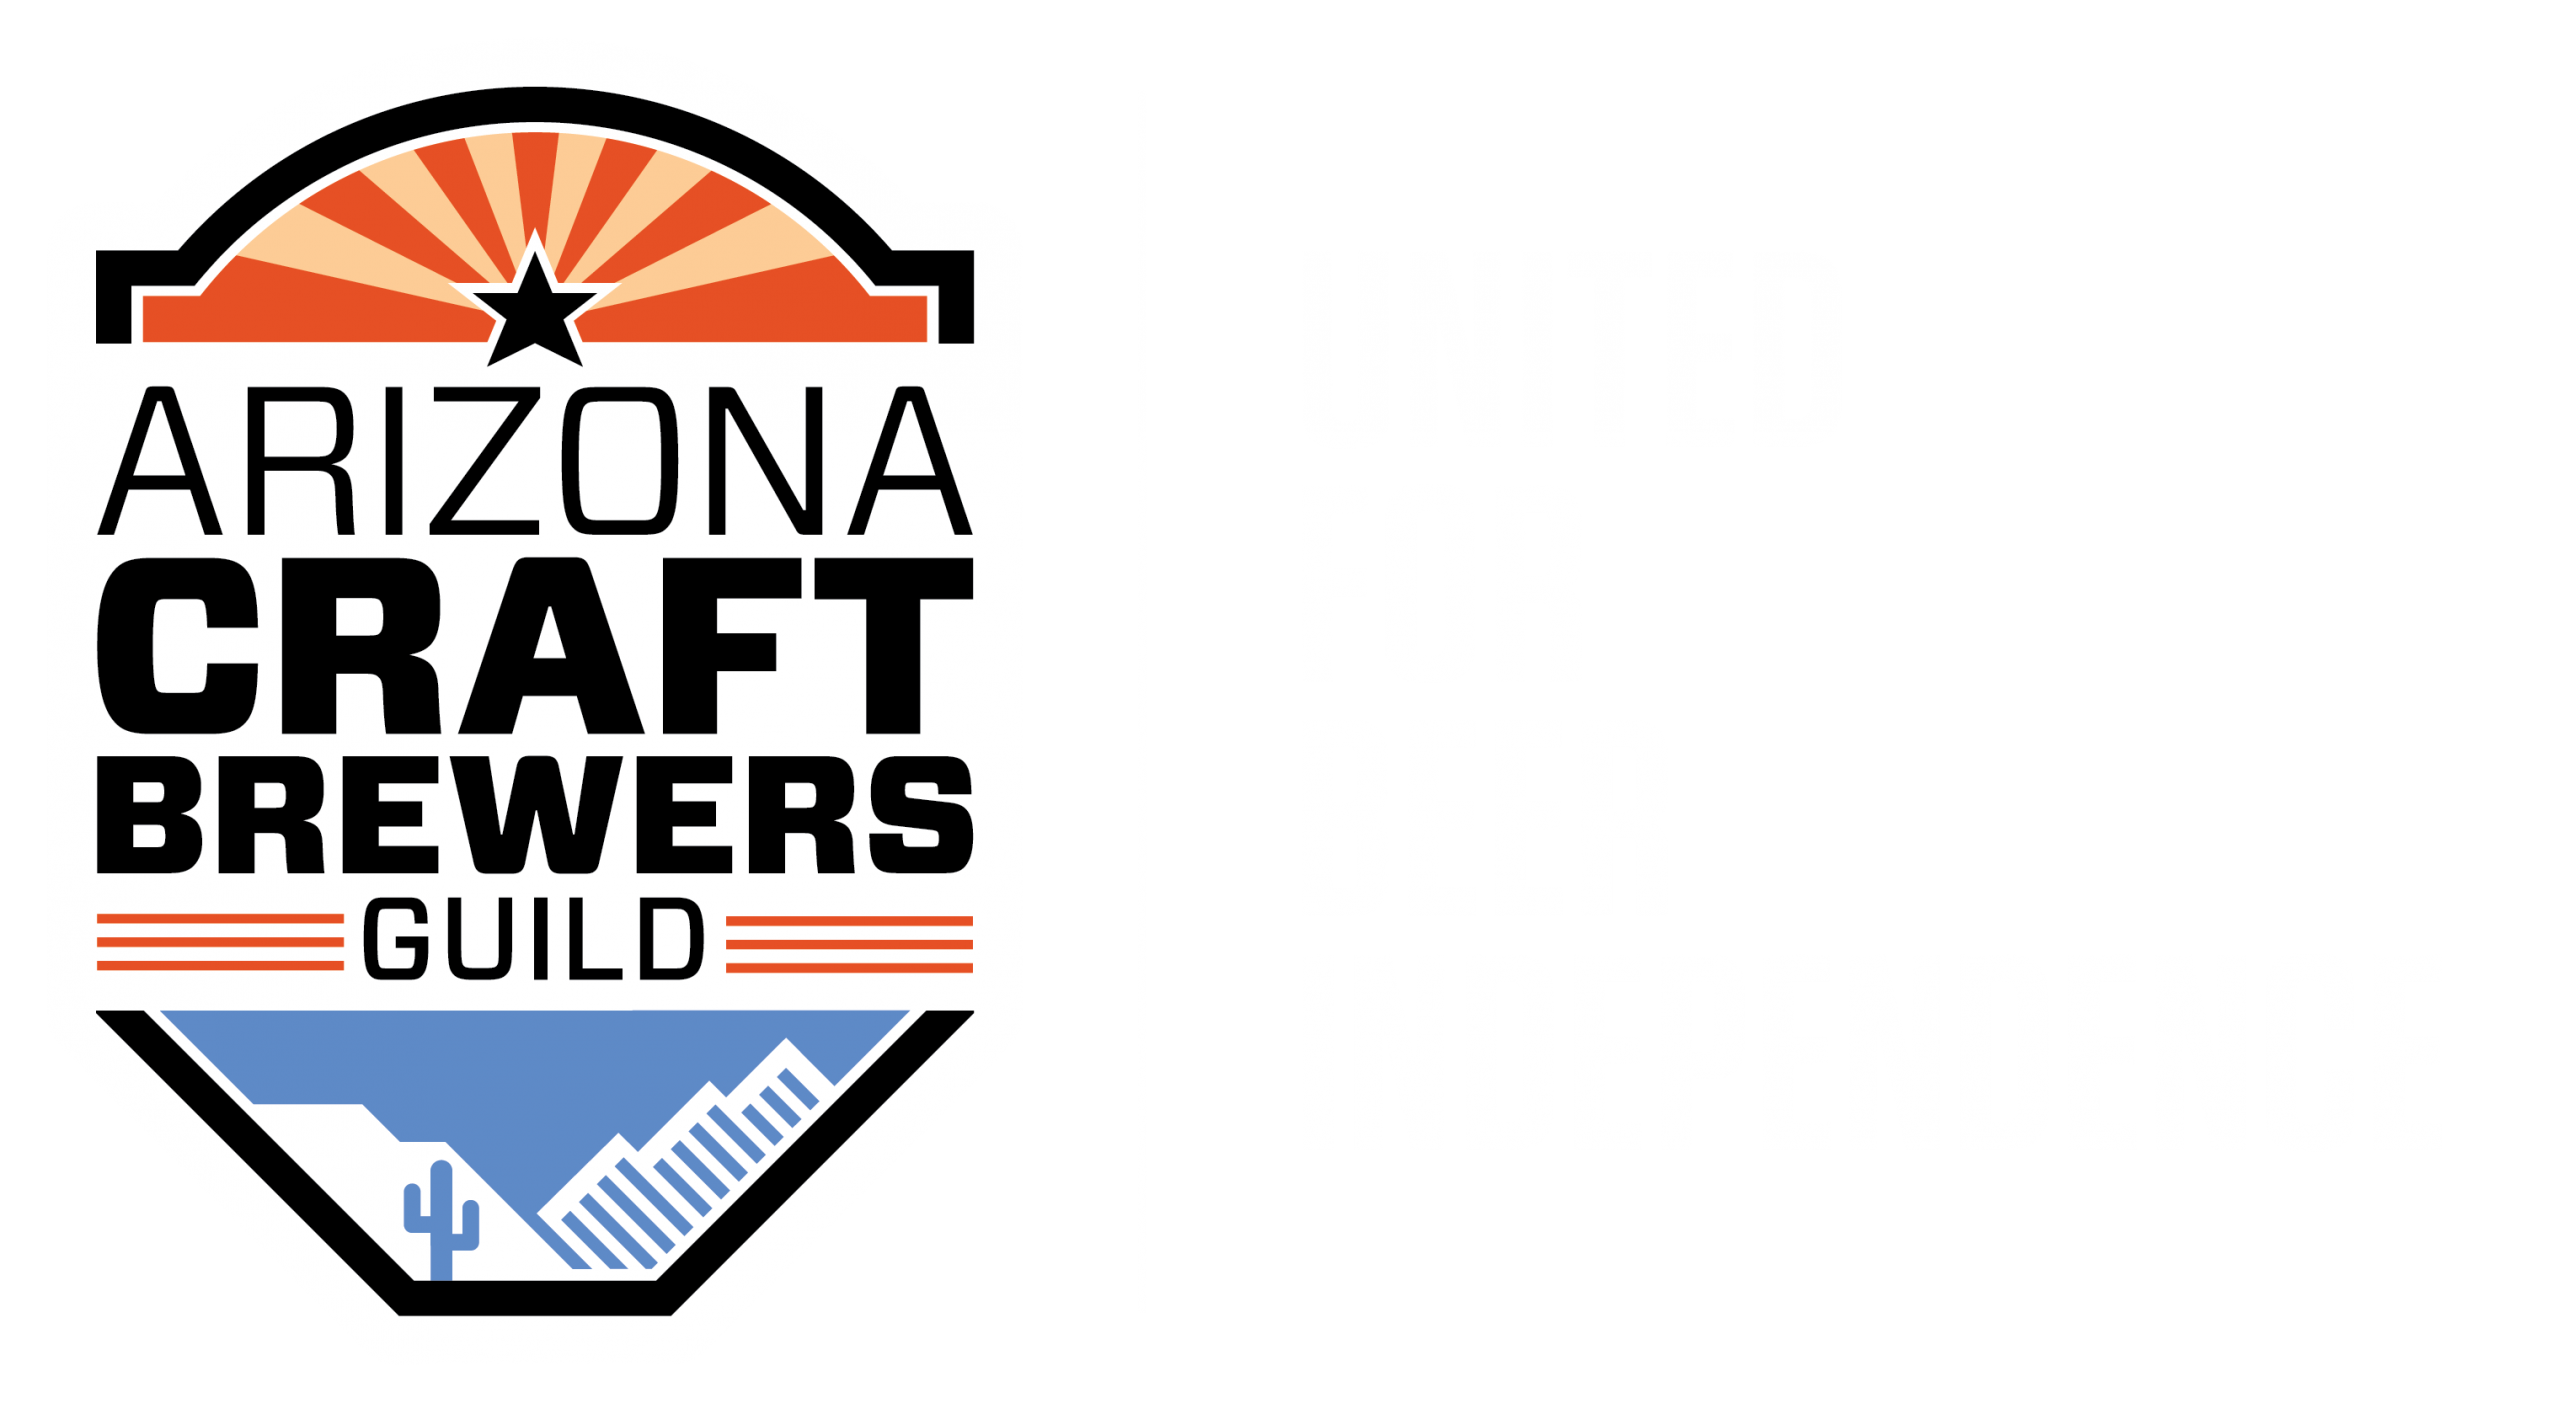 Scottsdale Beer Company | Arizona Craft Brewers Guild